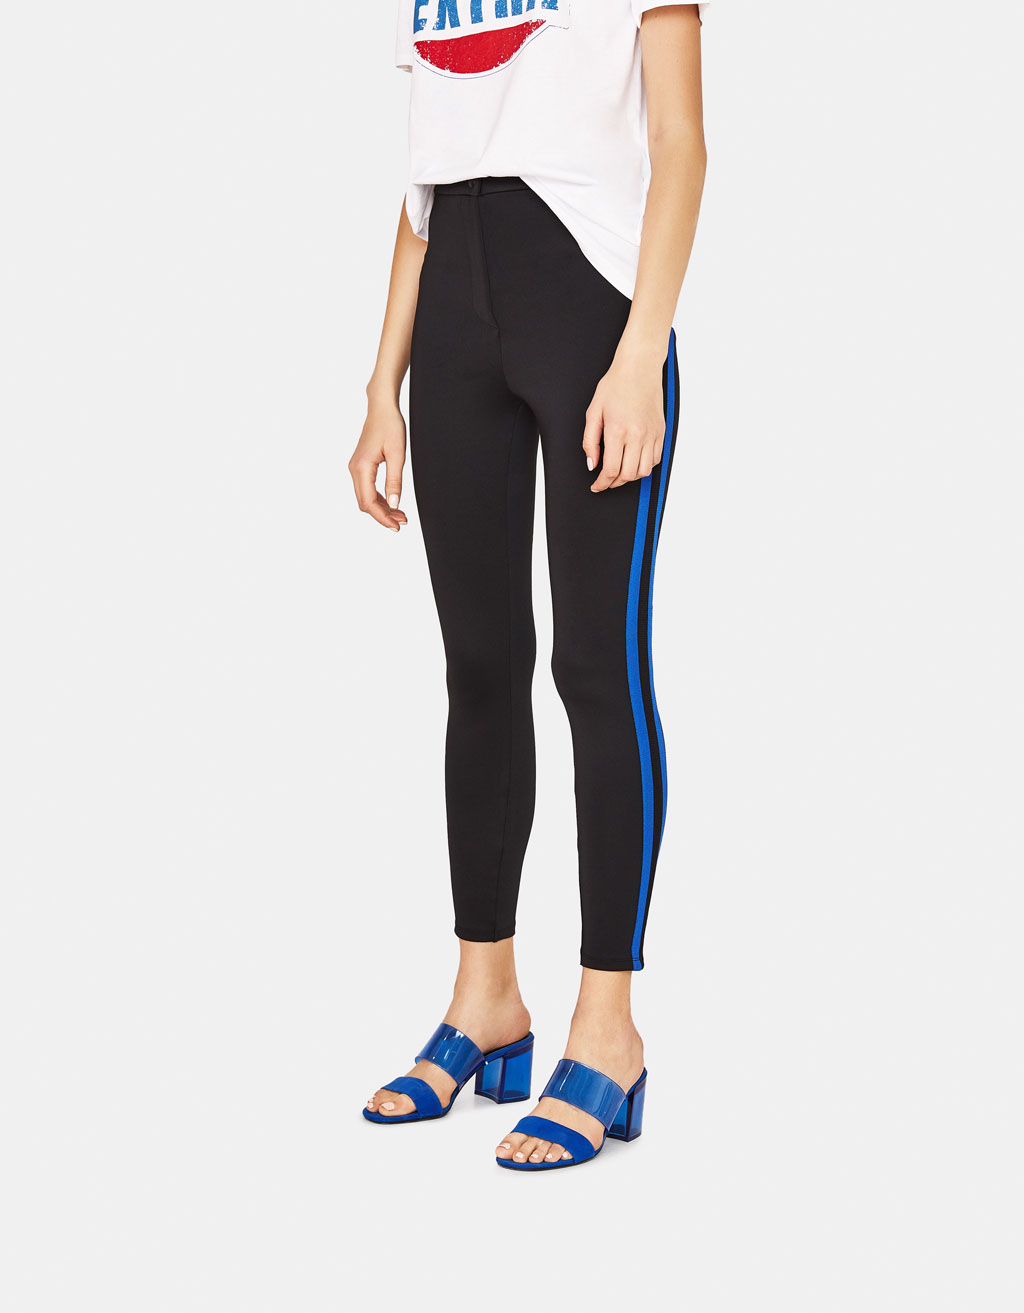 Leggings with side stripes